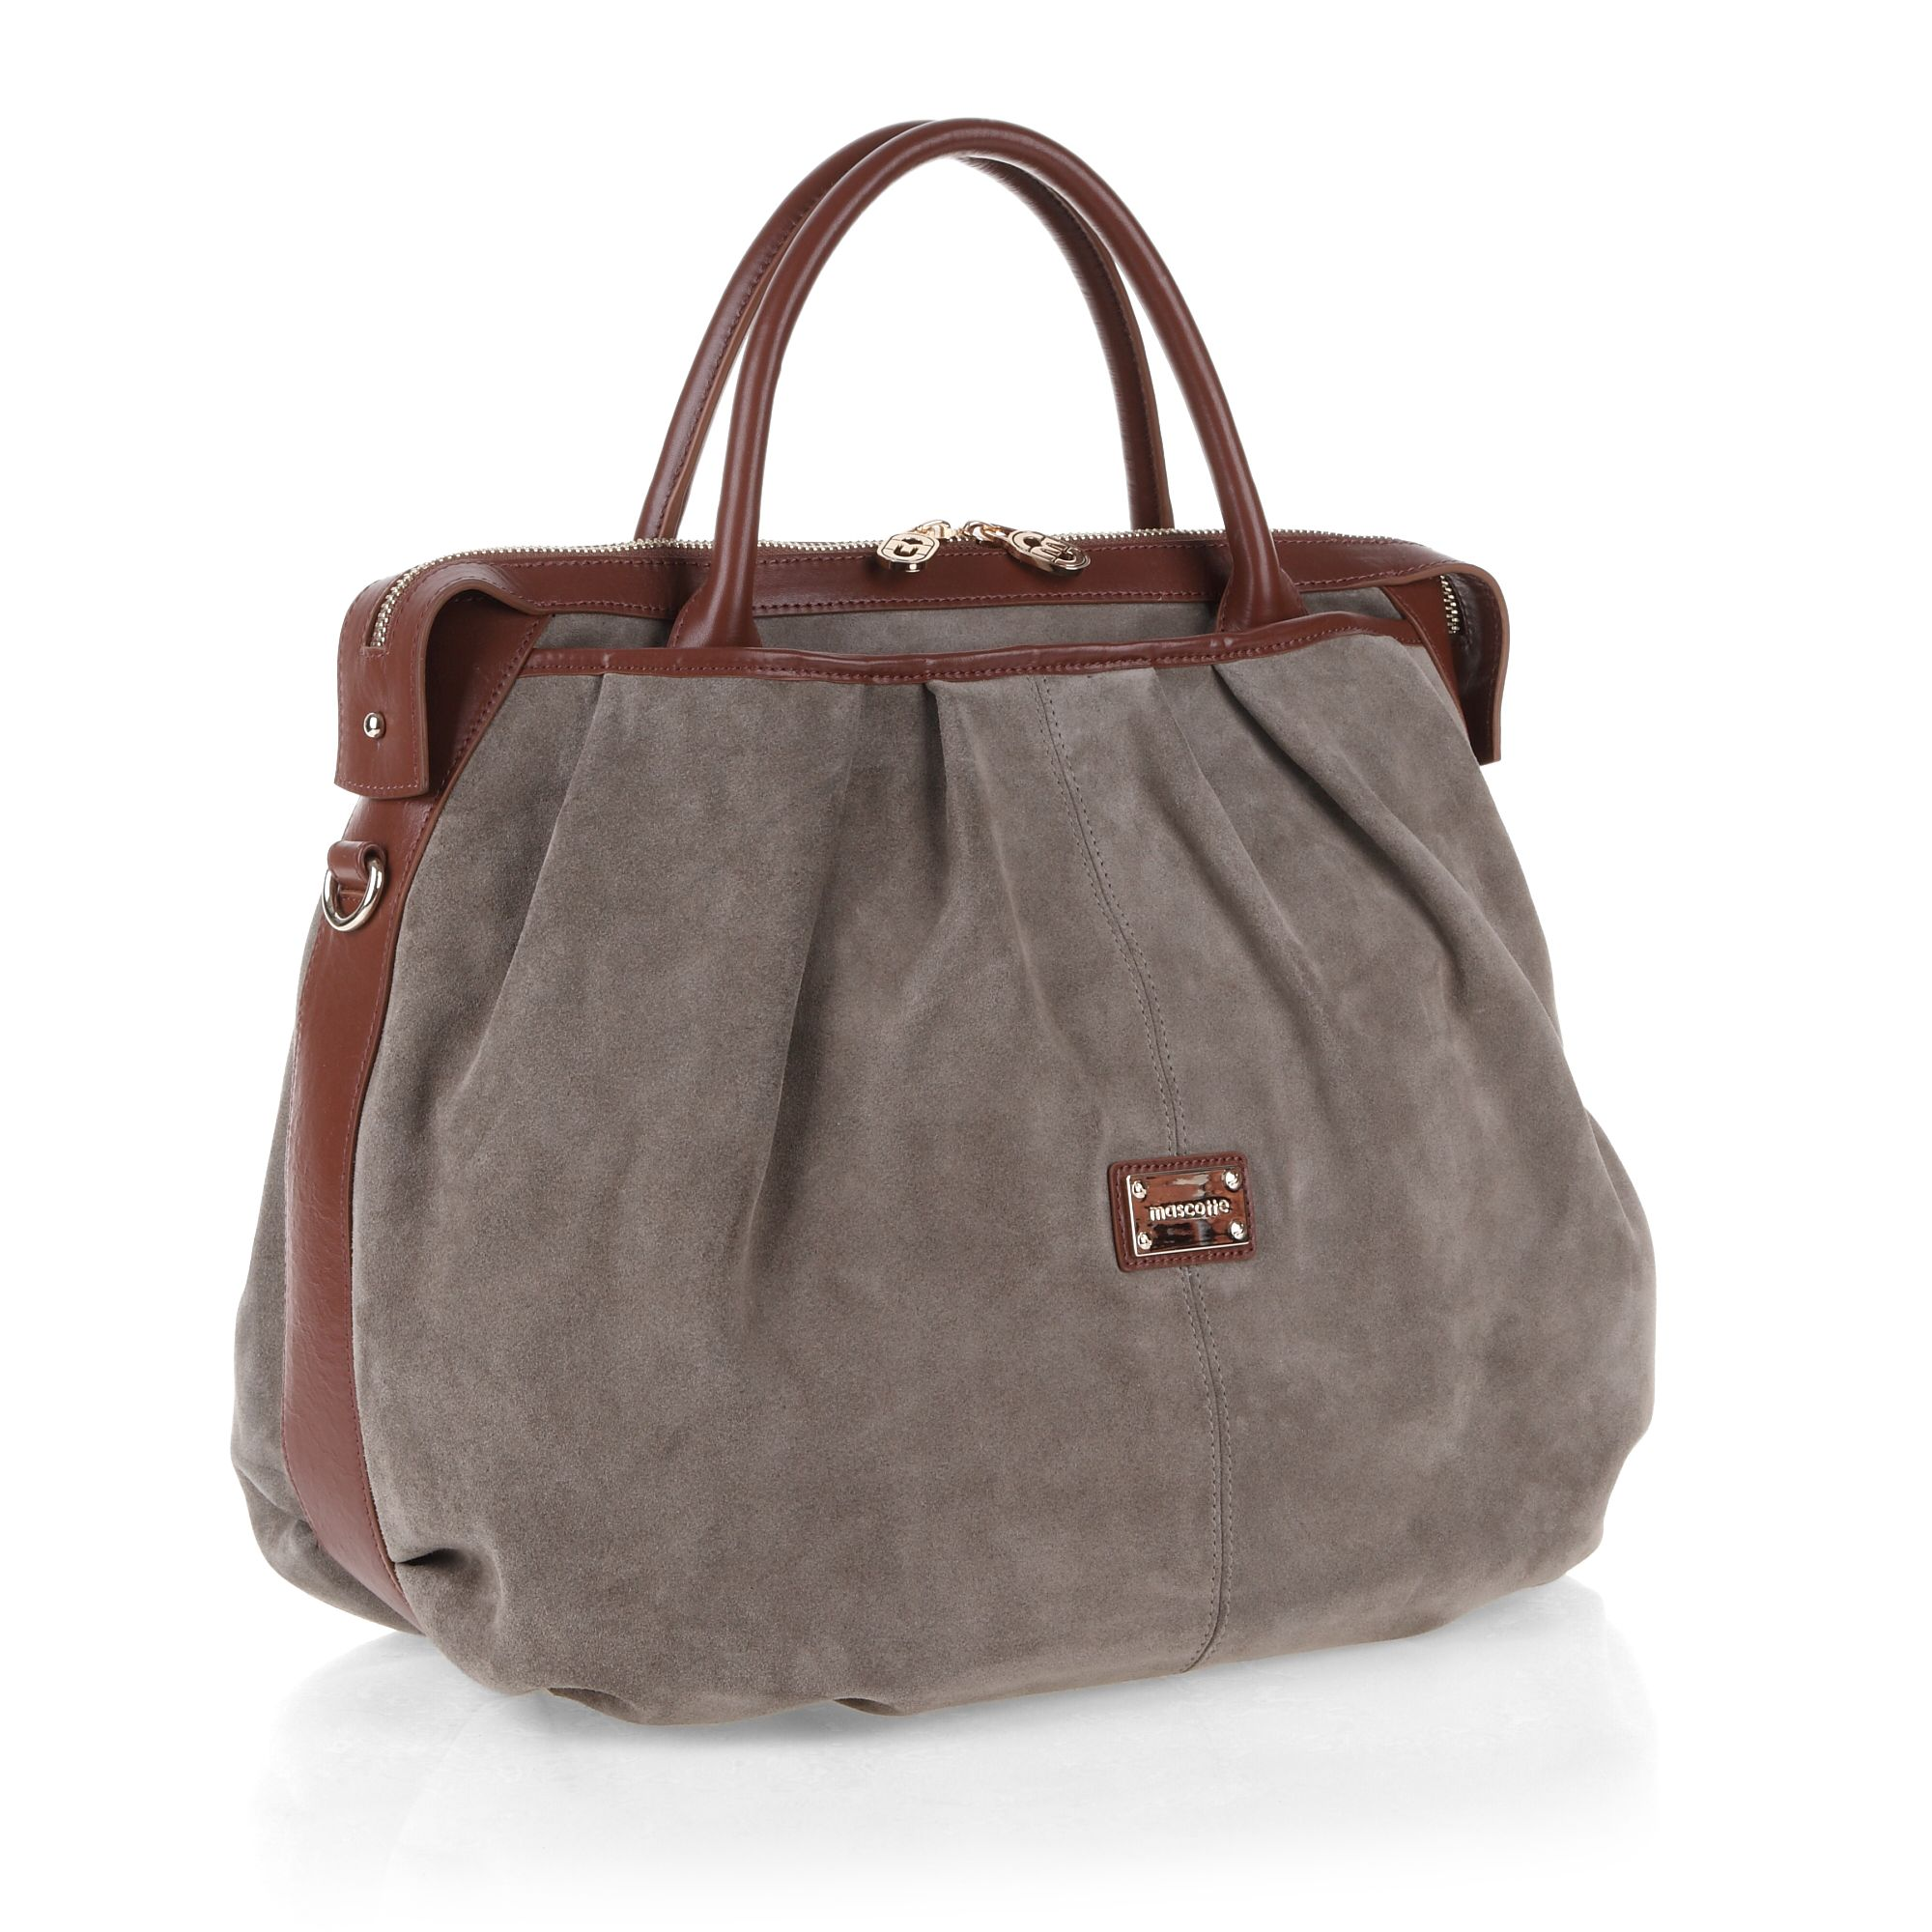 Top zip detailed suede hobo bag